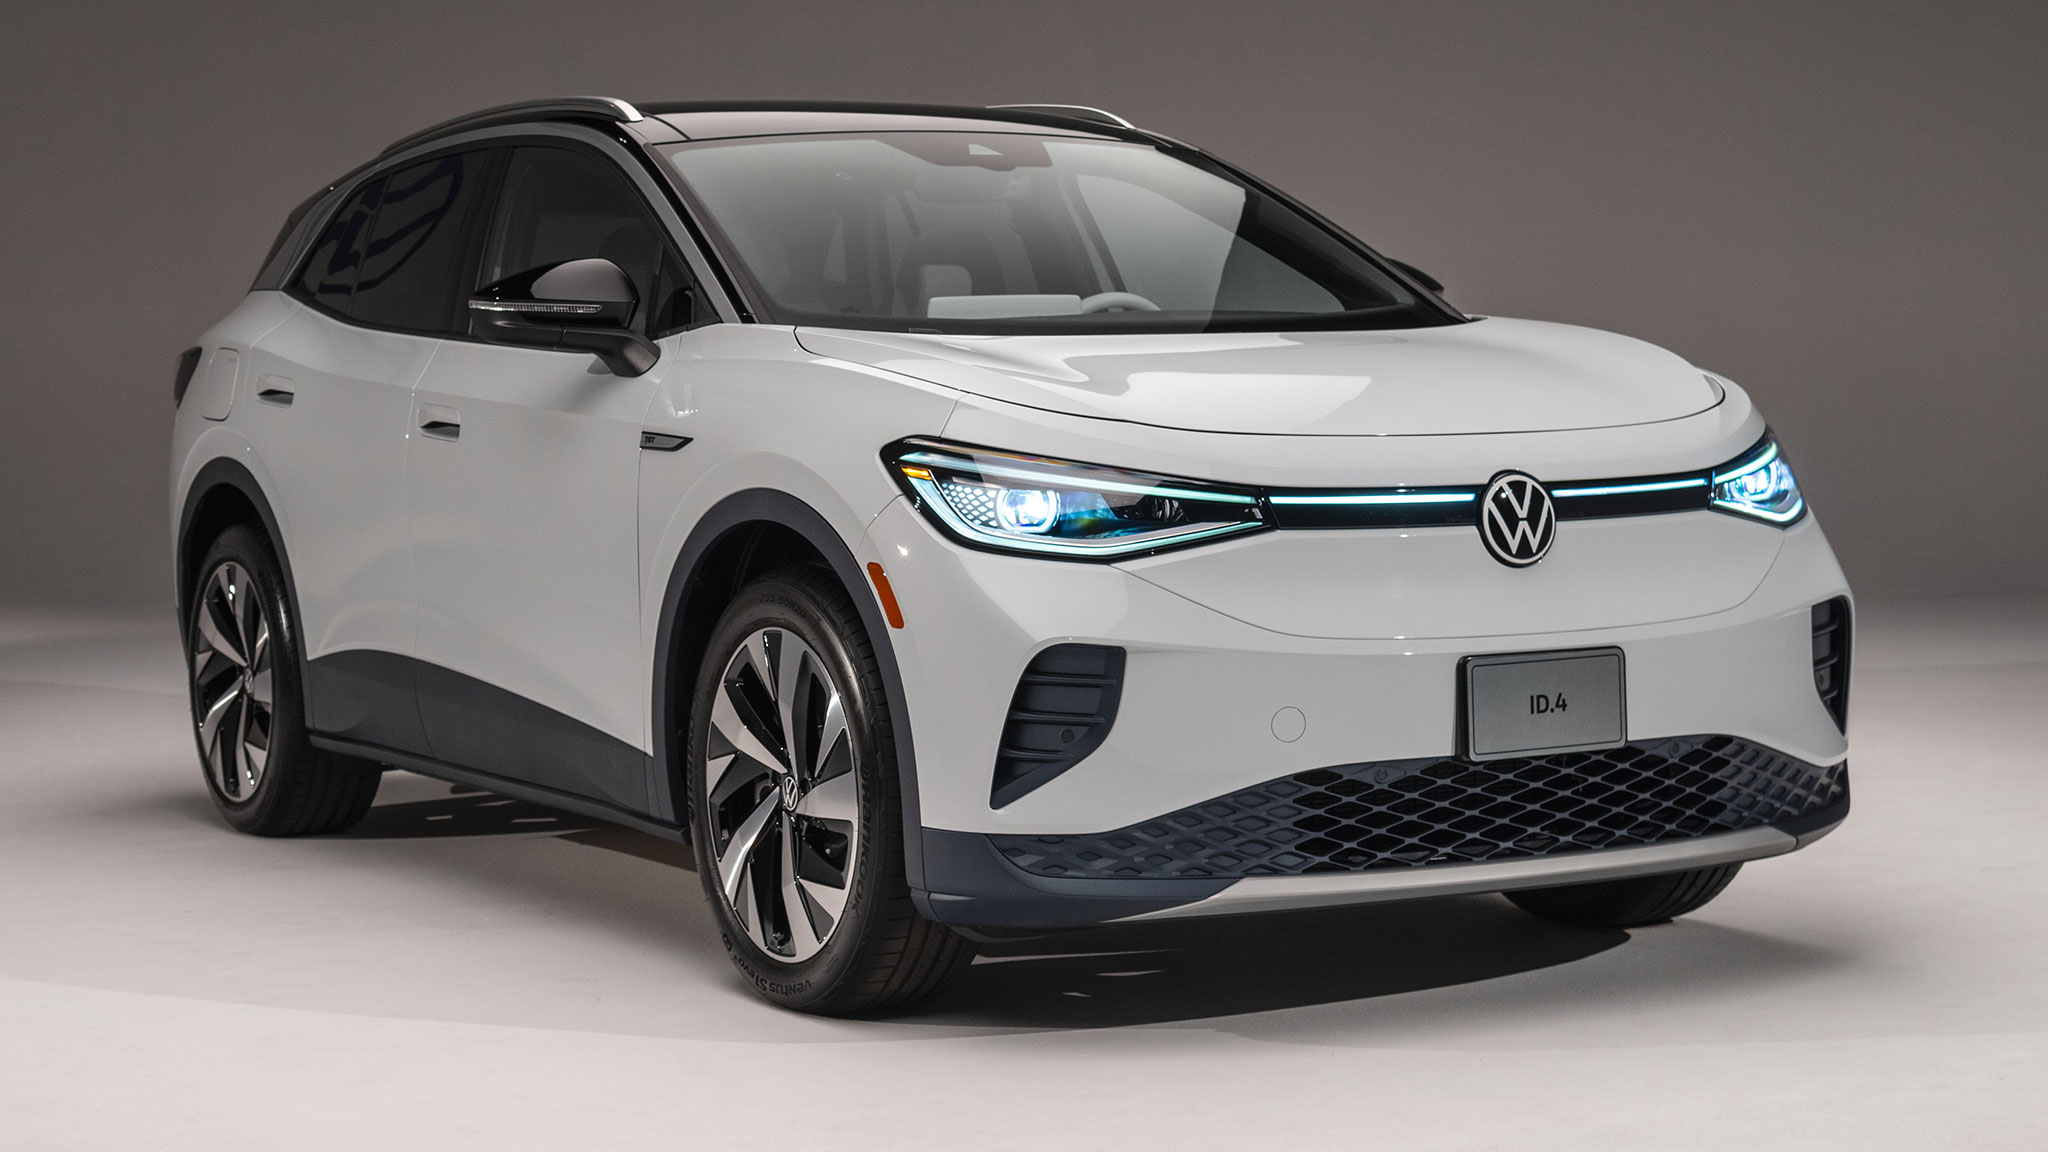 The Volkswagen ID.4 is VW's First Electric-Car Crossover, and It's Almost Here